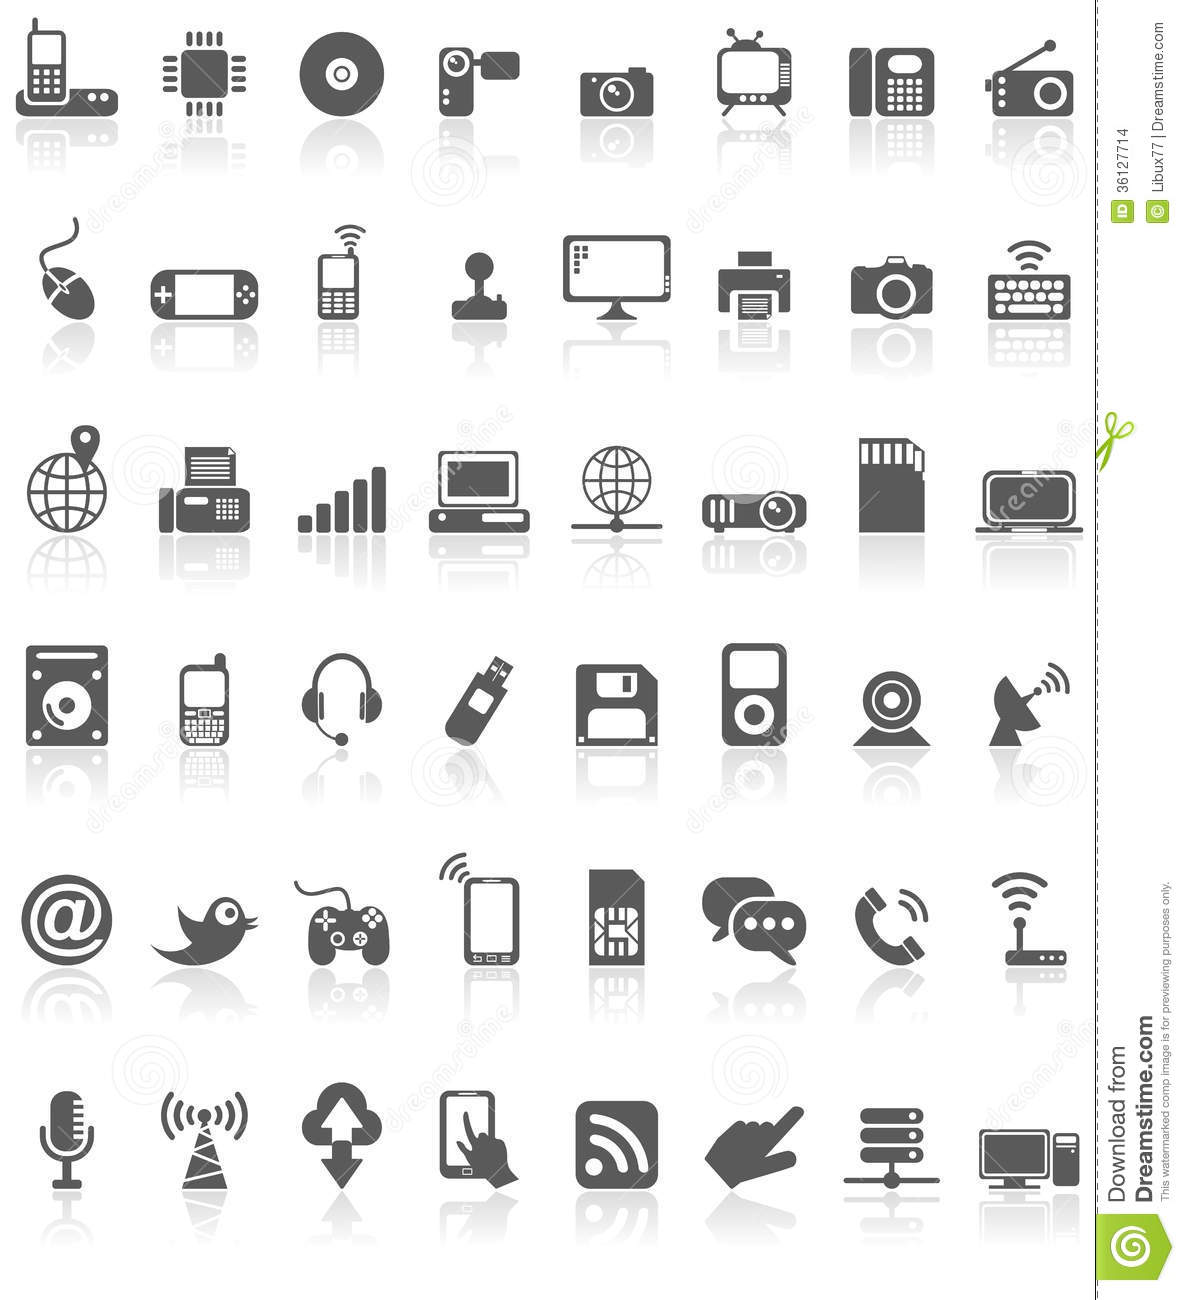 13 White Technology Icon Images